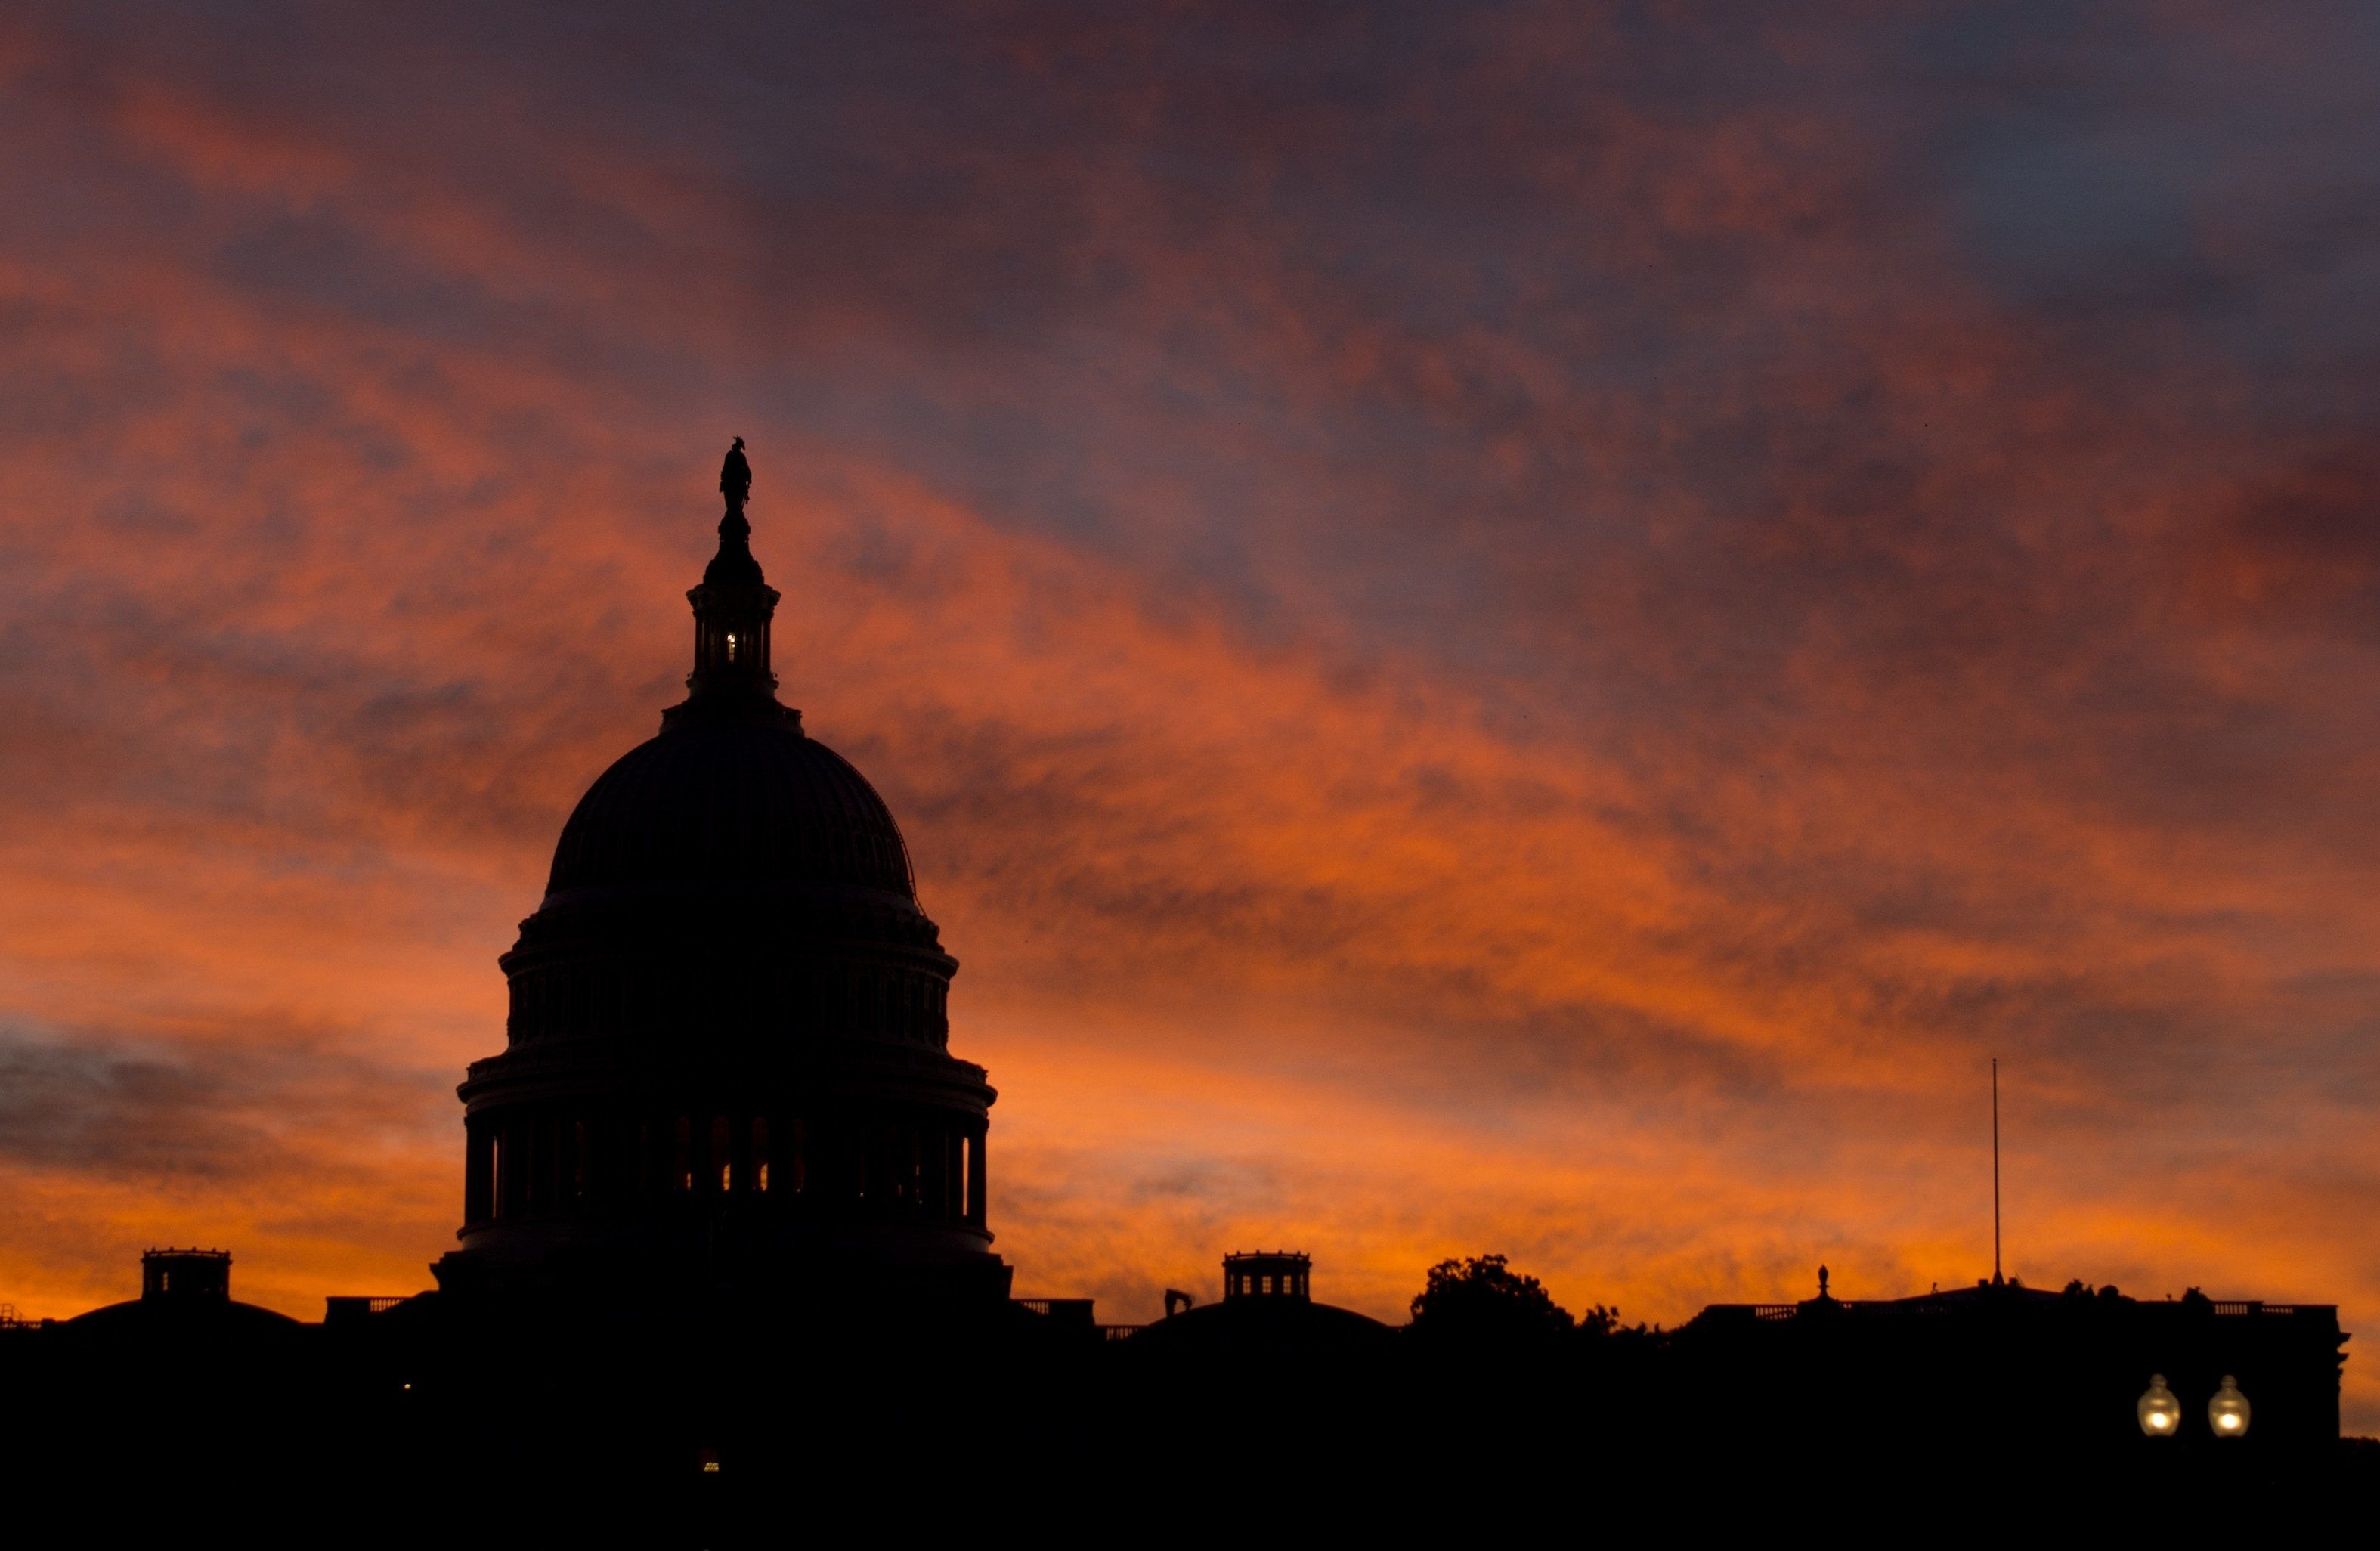 The US Capitol dome is seen at sunrise over Washington, DC, September 25, 2013. The US Senate faces a Sunday showdown over whether to keep government running, but bickering over US President Barack Obama's signature health care law is bringing federal agencies dangerously close to a shutdown. A fractured Congress is struggling to approve a stopgap spending bill that keeps government doors open after the current fiscal year ends next Monday. AFP PHOTO / Saul LOEB        (Photo credit should read SAUL LOEB/AFP/Getty Images)